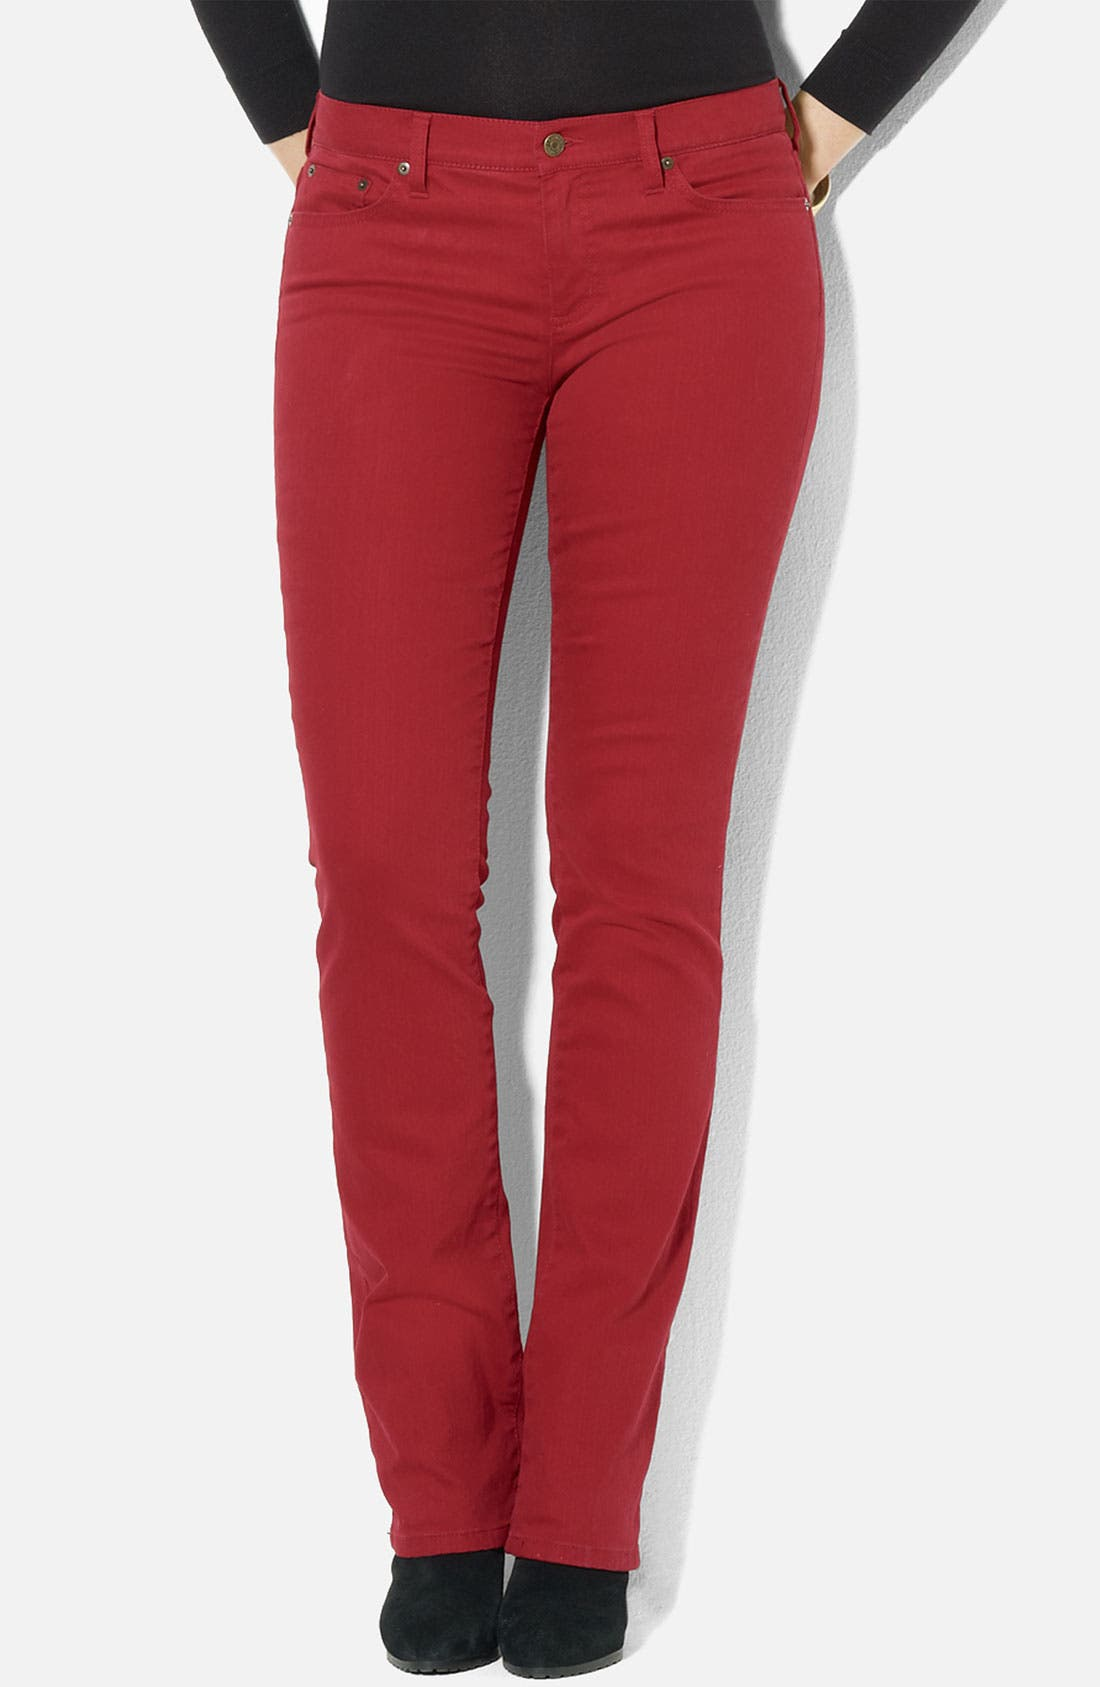 Alternate Image 1 Selected - Lauren Ralph Lauren Slim Straight Leg Colored Jeans (Petite) (Online Exclusive)